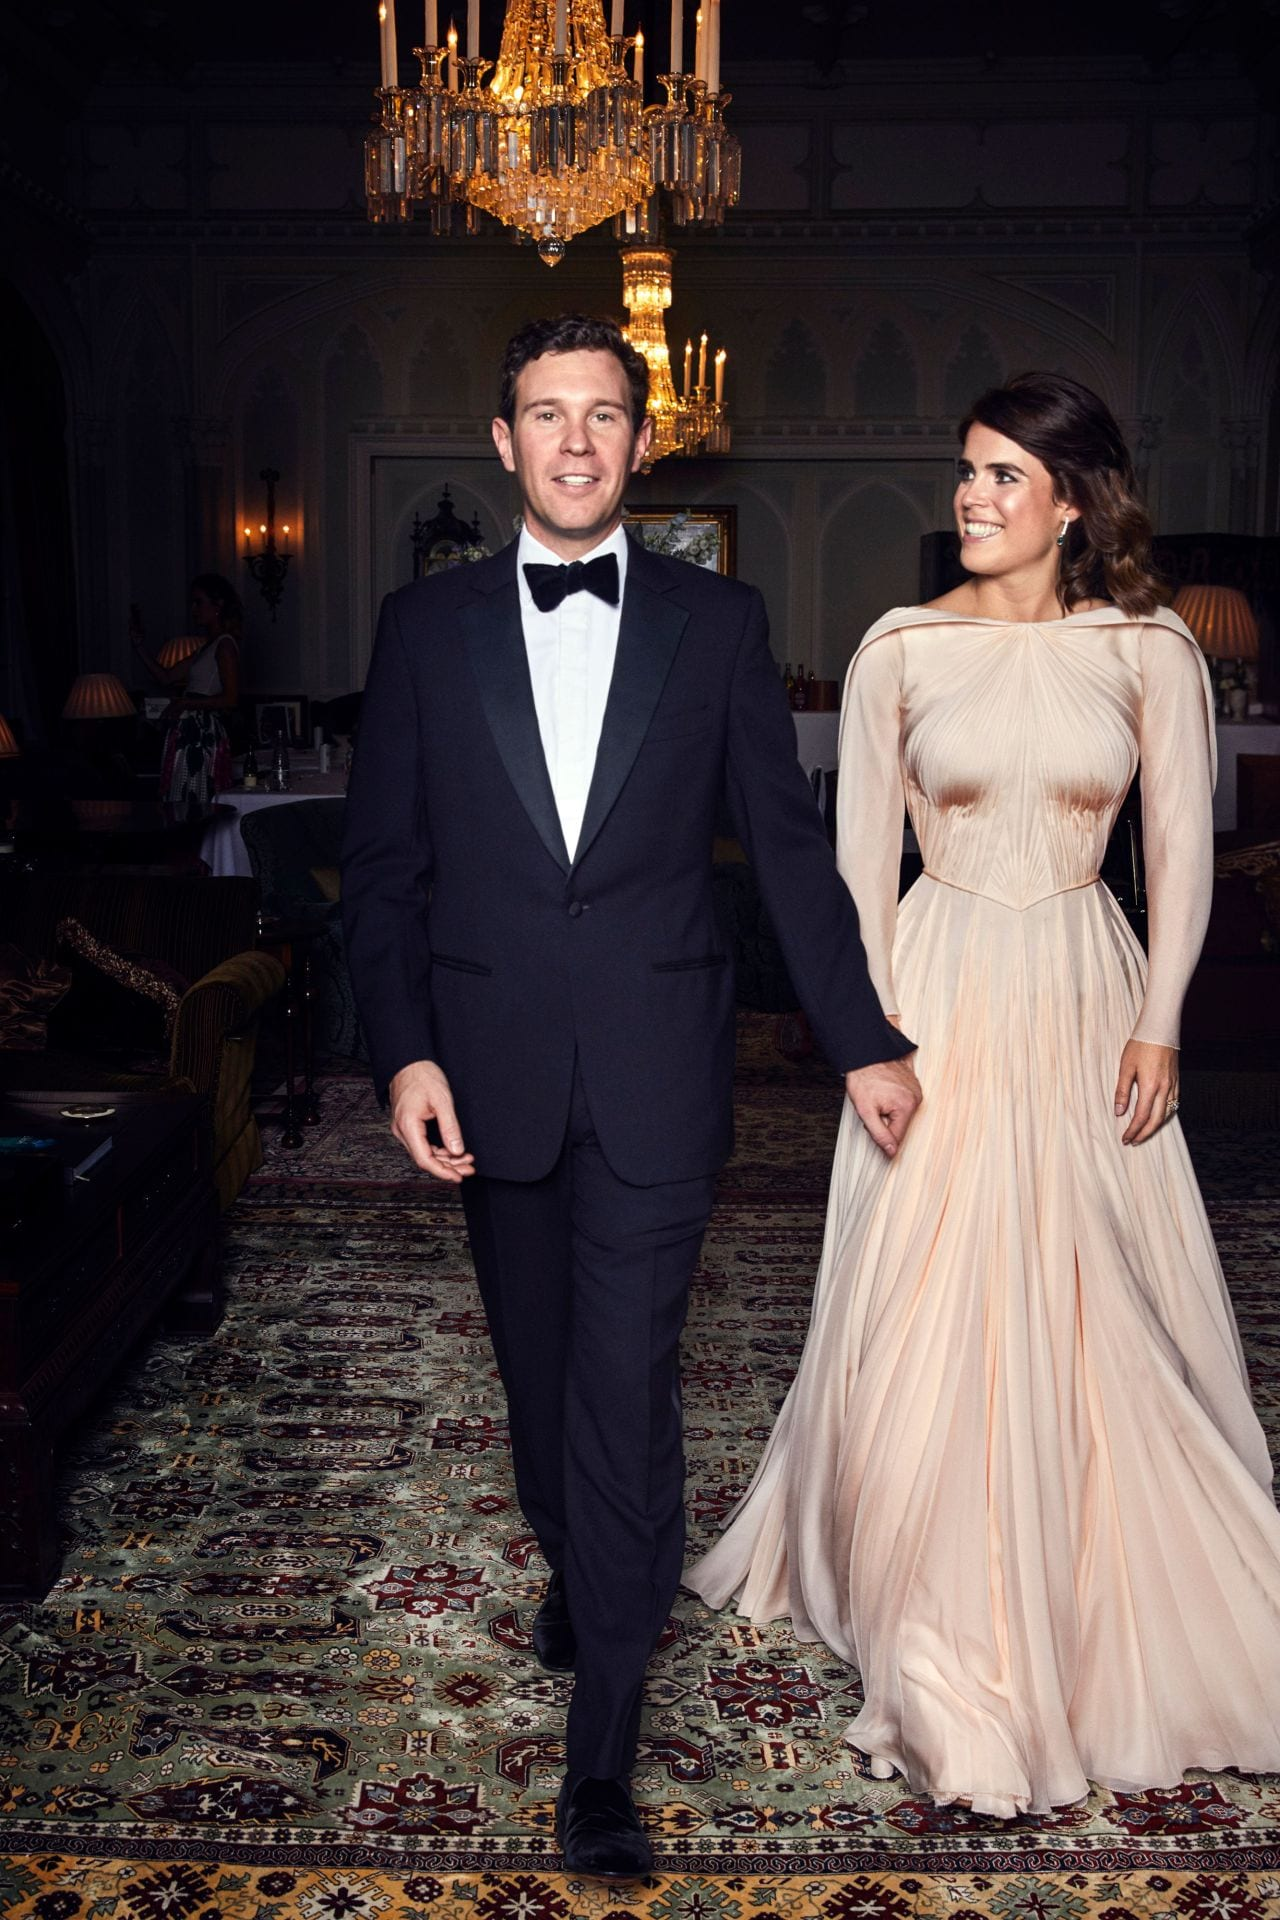 Zac Posen shares a never-before-seen photo of Princess Eugenie's reception gown